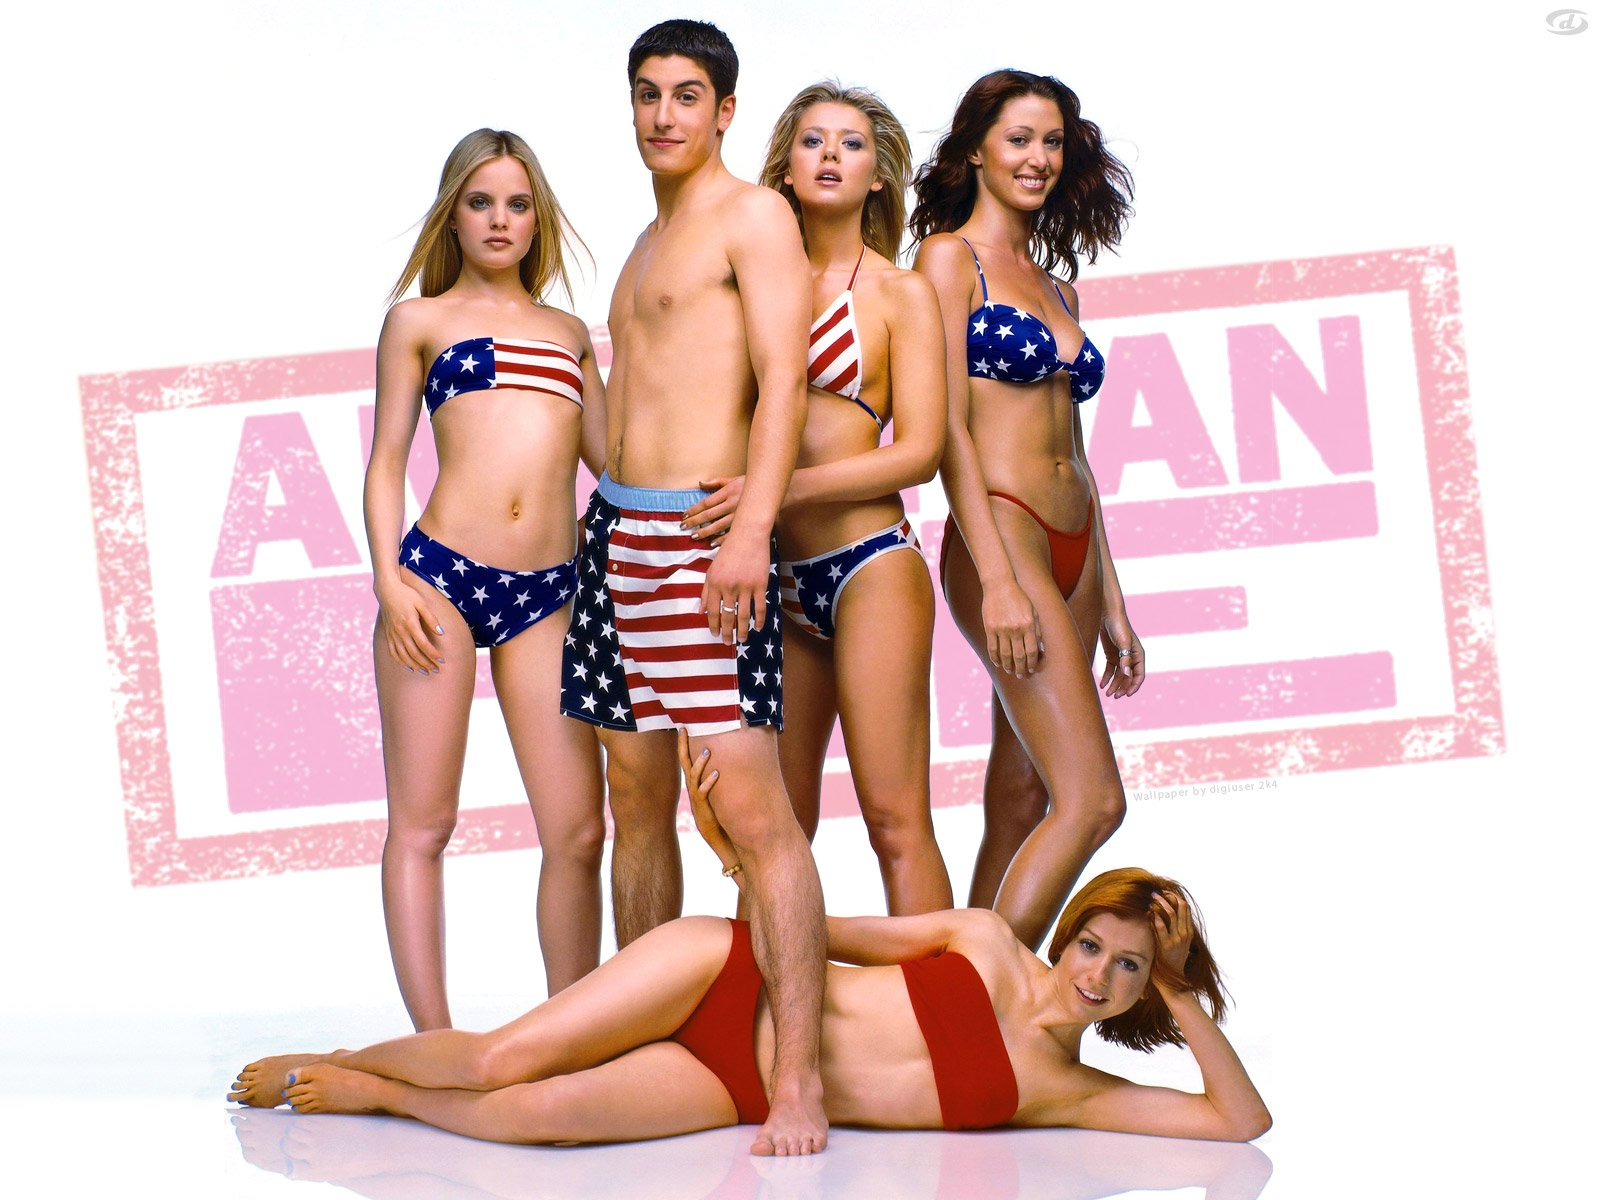 from Erick nude girls from american pie movies